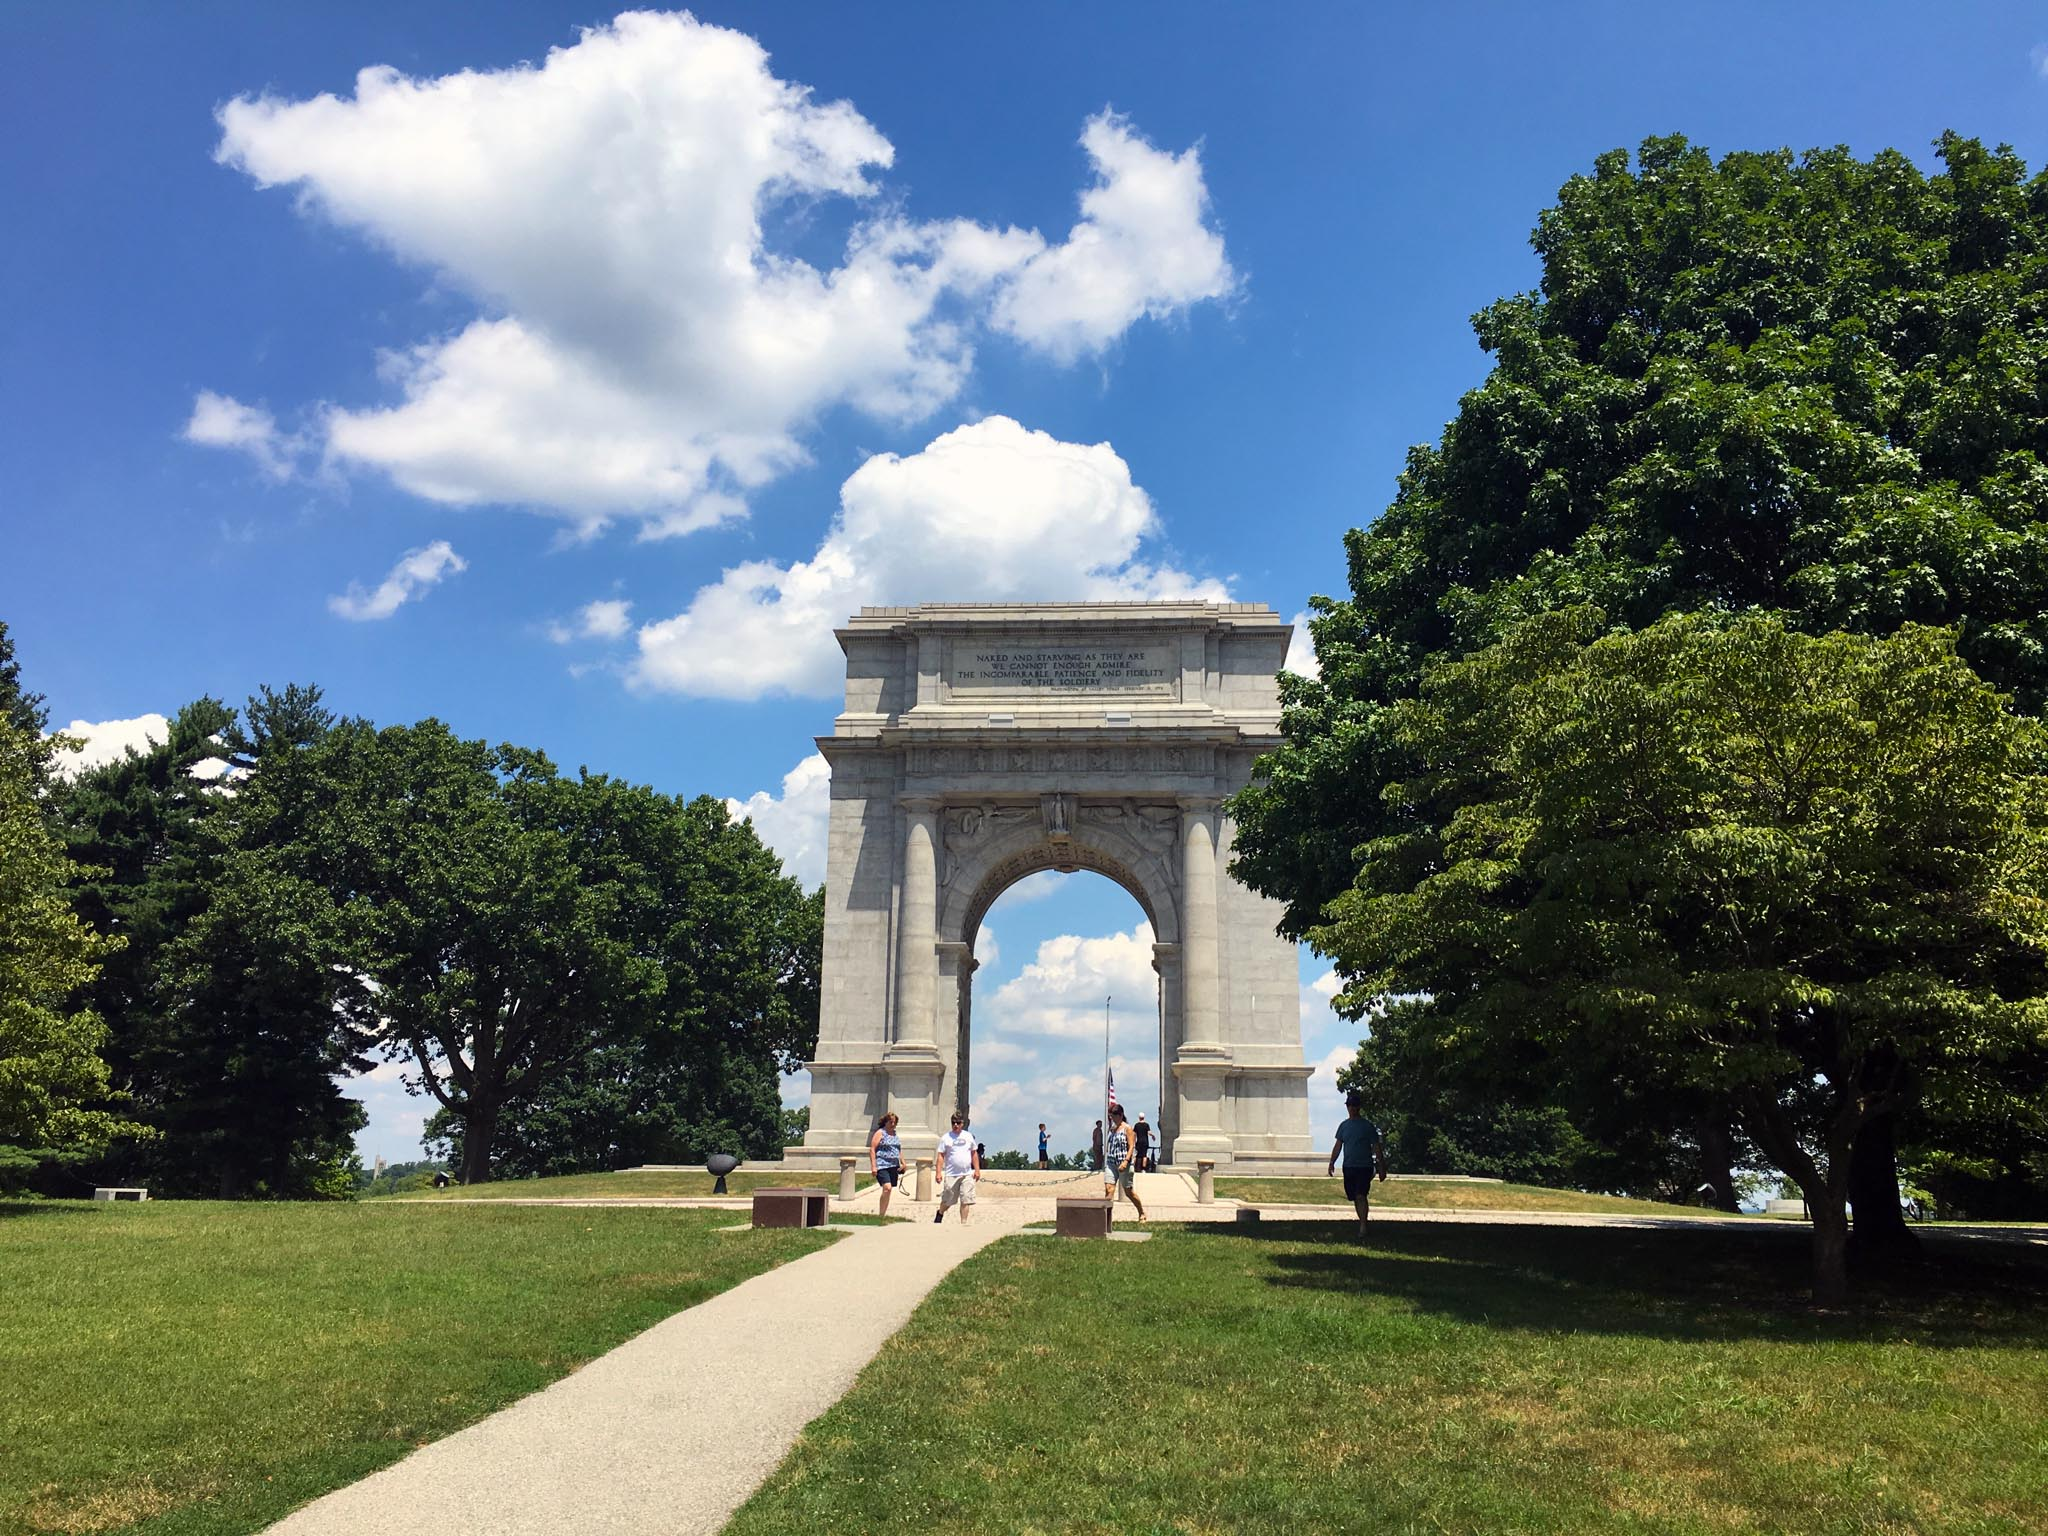 Designed by Paul Phillipe Cret, the National Memorial Arch is inspired by the Arch of Titus (A.D. 81) in Rome. It was dedicated on June 19, 1917, and commemorates the arrival of Washington and the Continental Army to Valley Forge. It was unveiled for a second time in August of 1997, after restoration was made possible by funds from the Free and Accepted Masons of Pennsylvania.